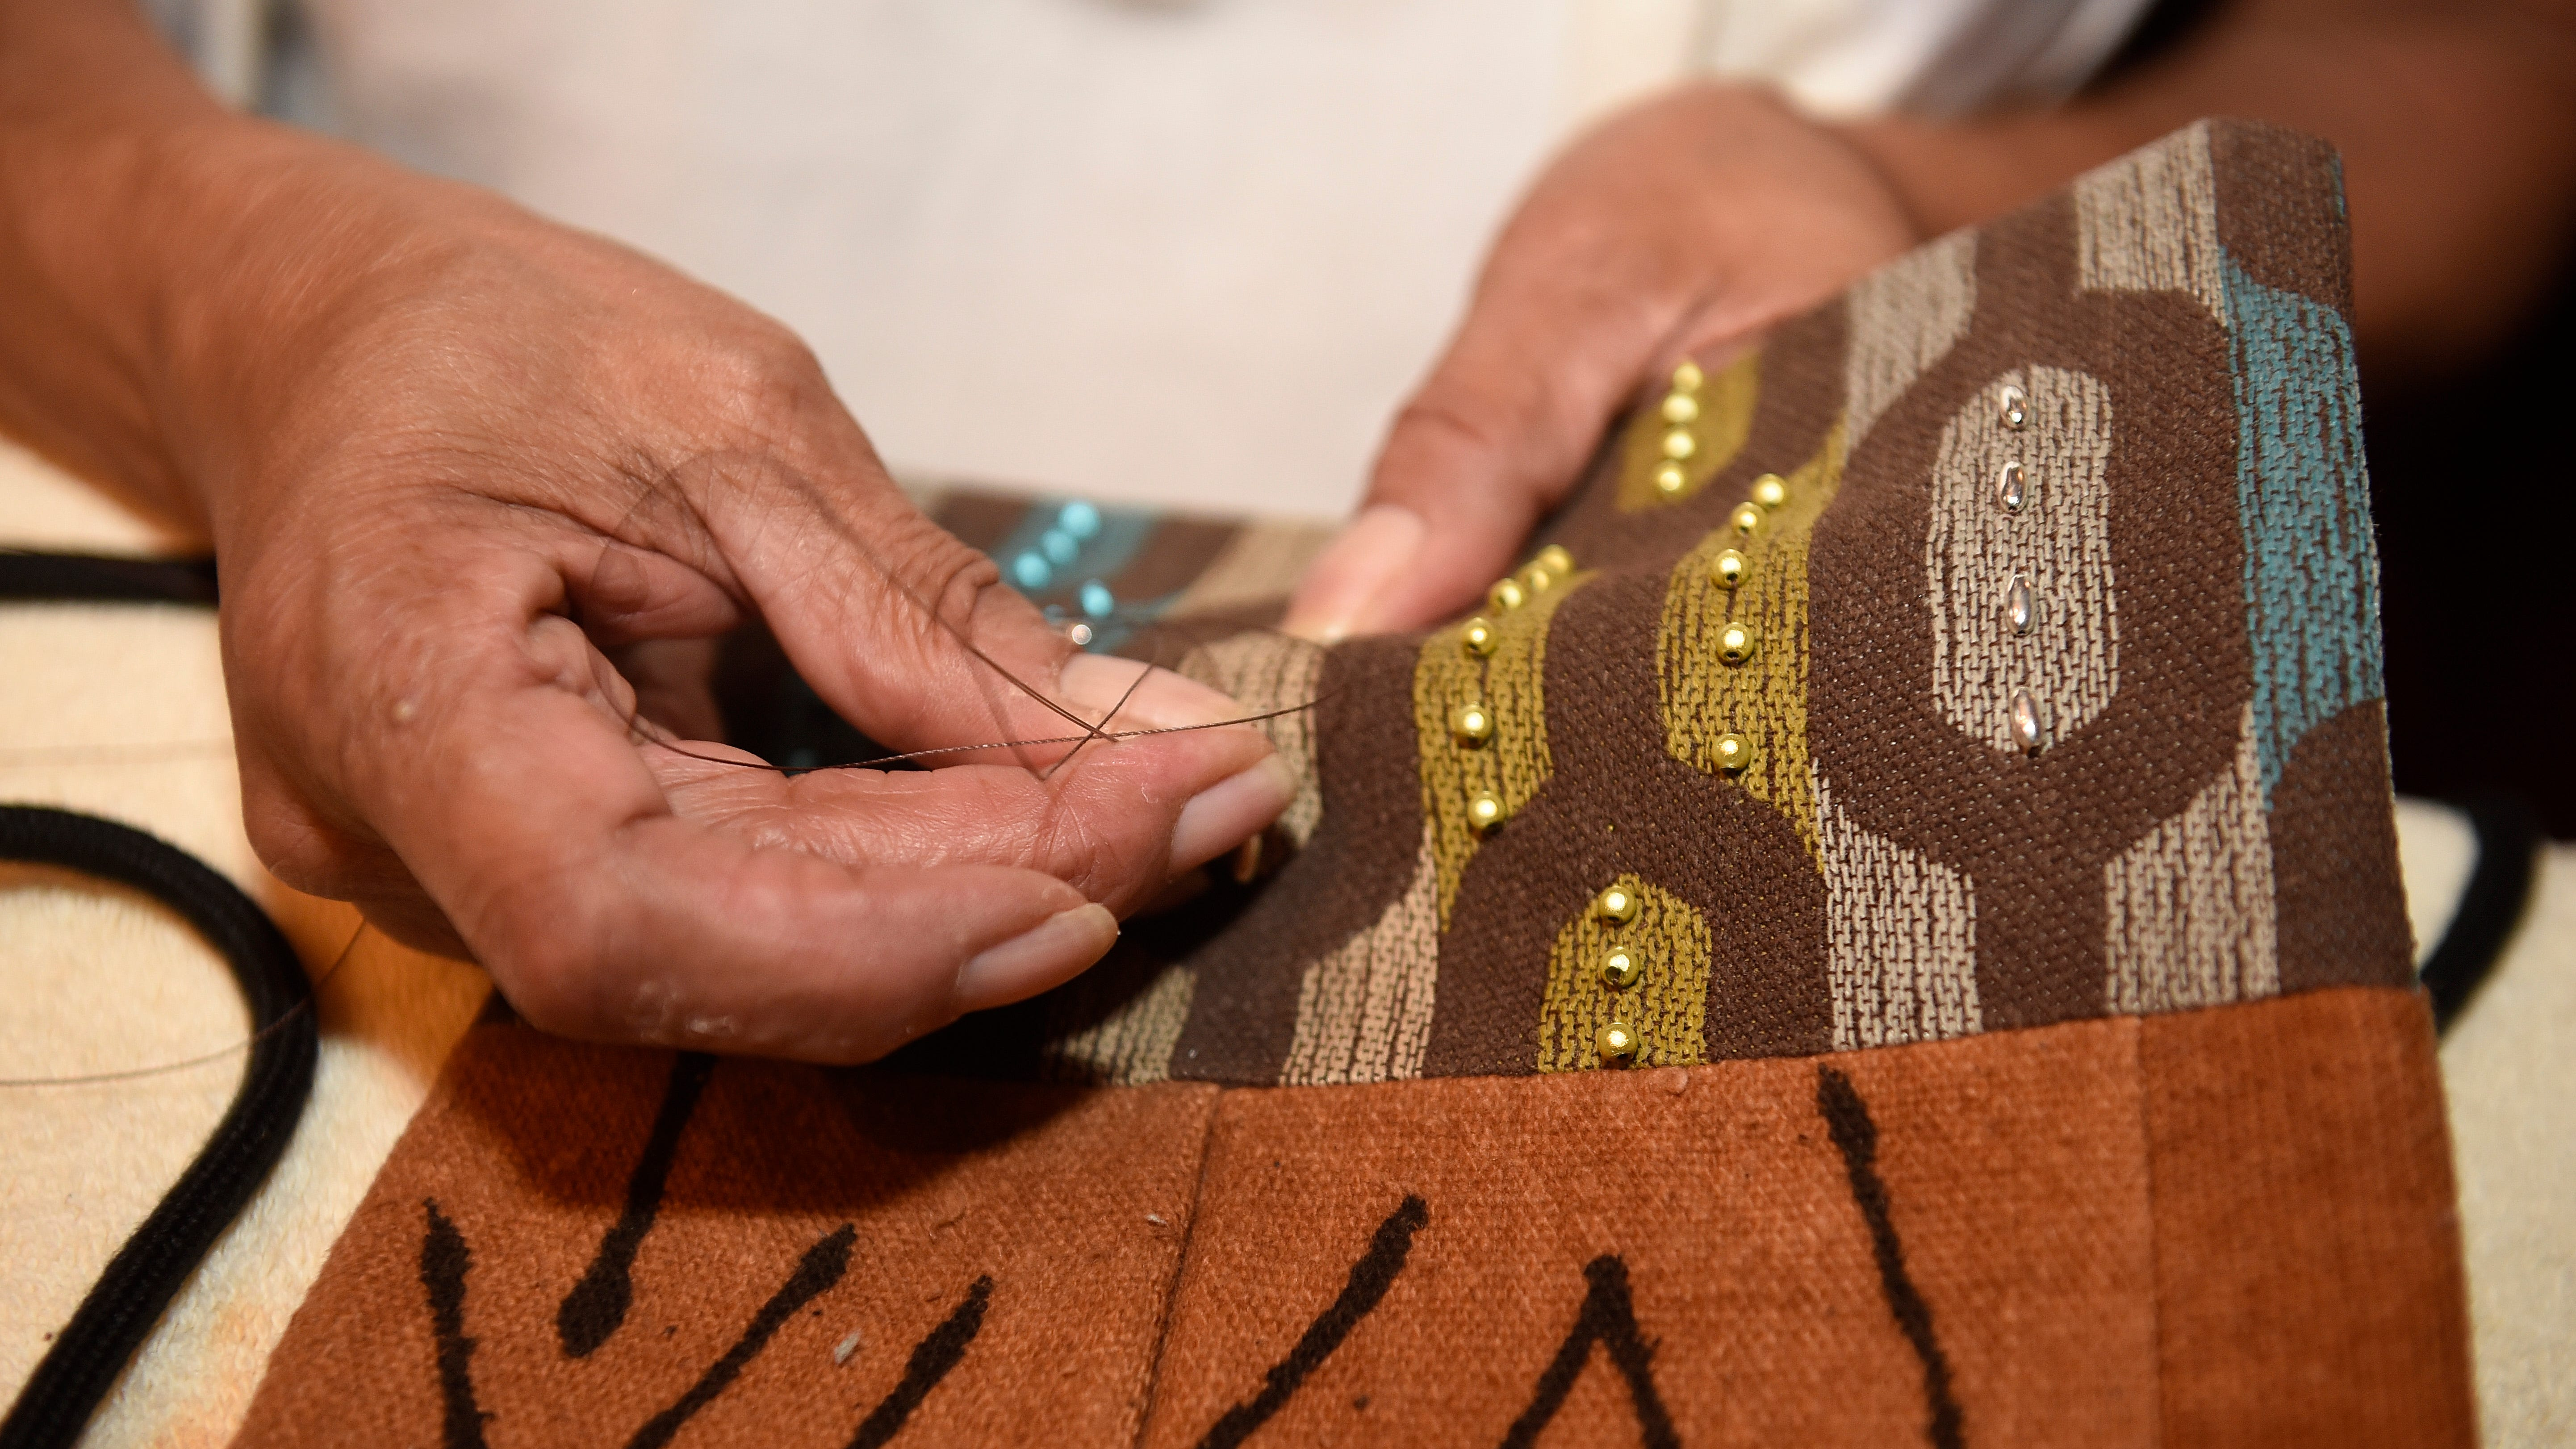 Handmade: It's all in the bag for accessories designer